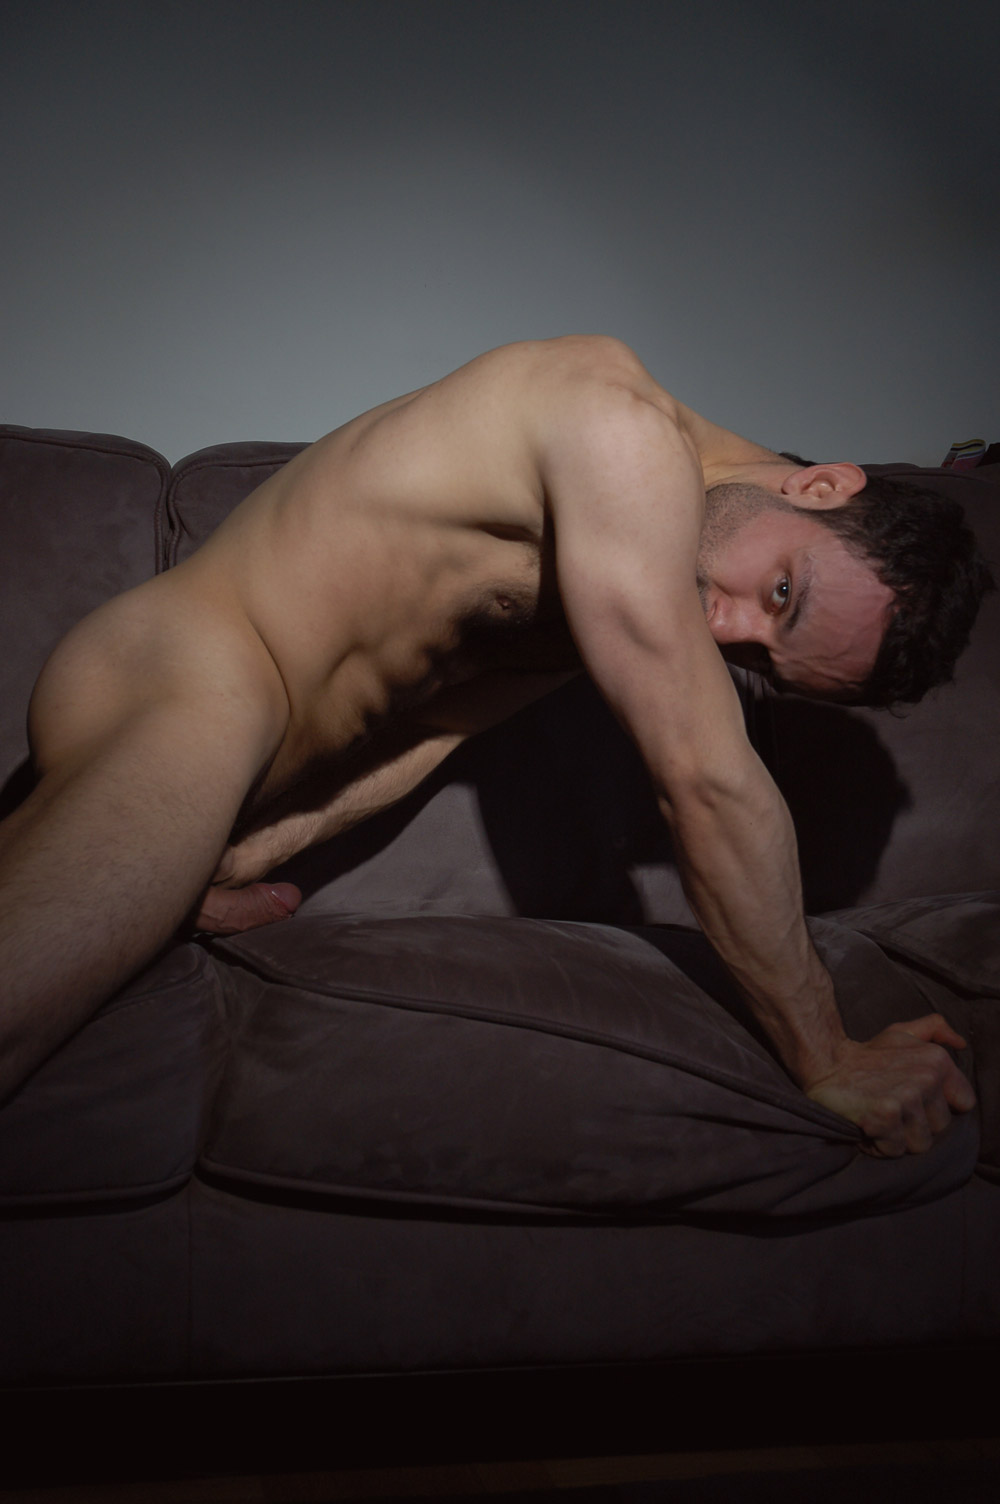 Brian on a couch, 2010, digital c-print on Fuji Crystal Archive, 12x18 inches, open edition, $300